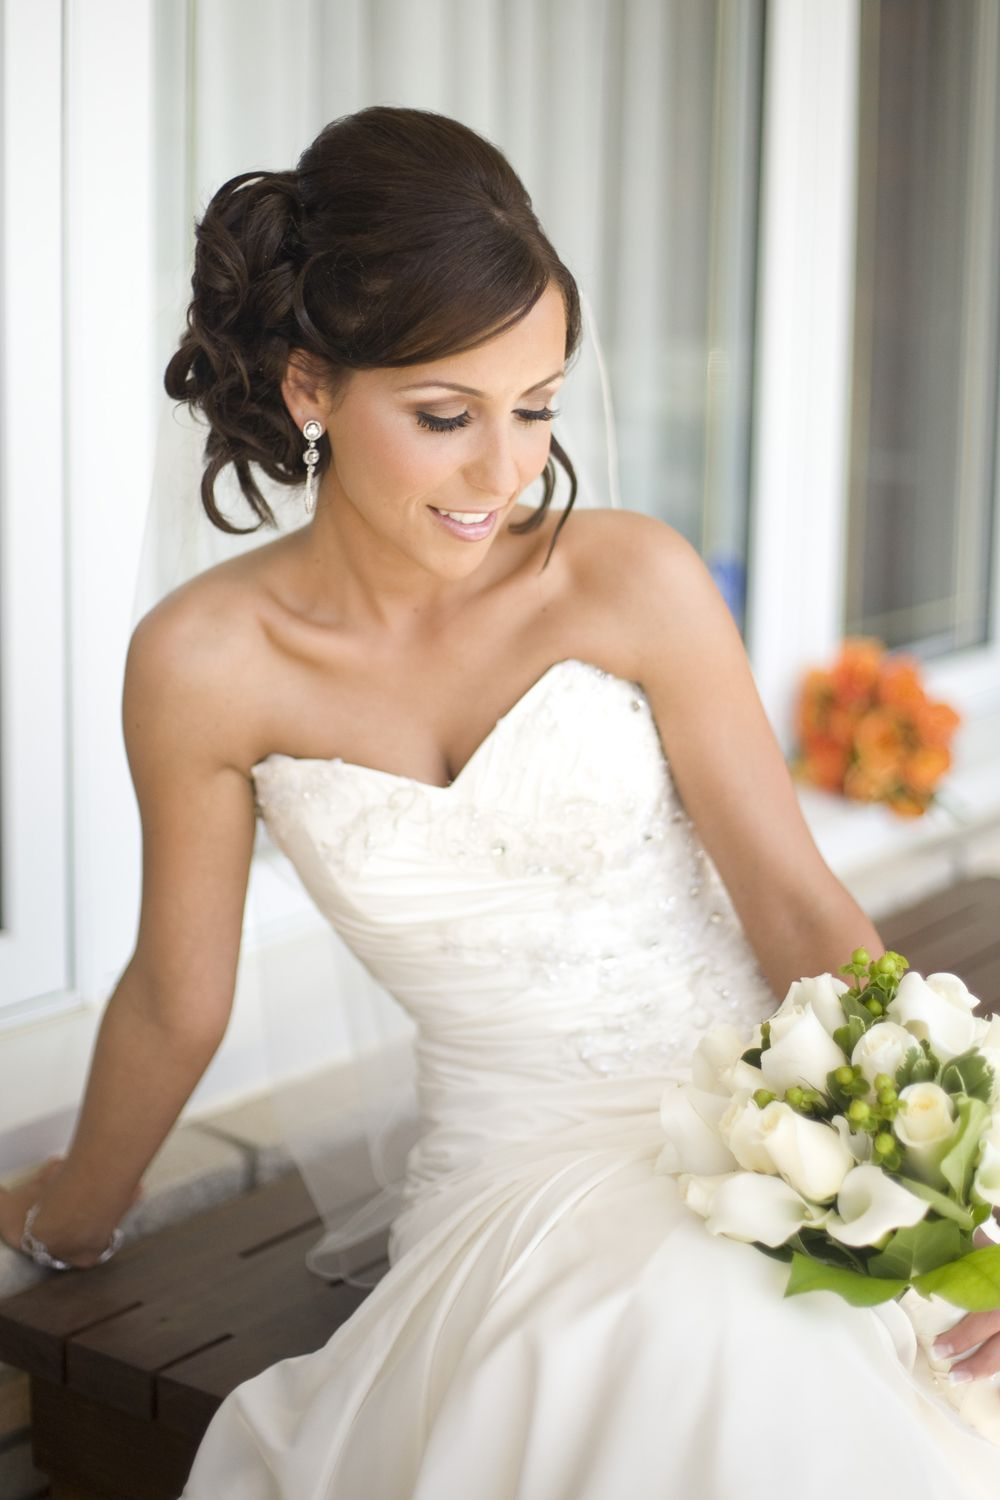 bridal hair and makeup in washington, dc | bridal hair and makeup in